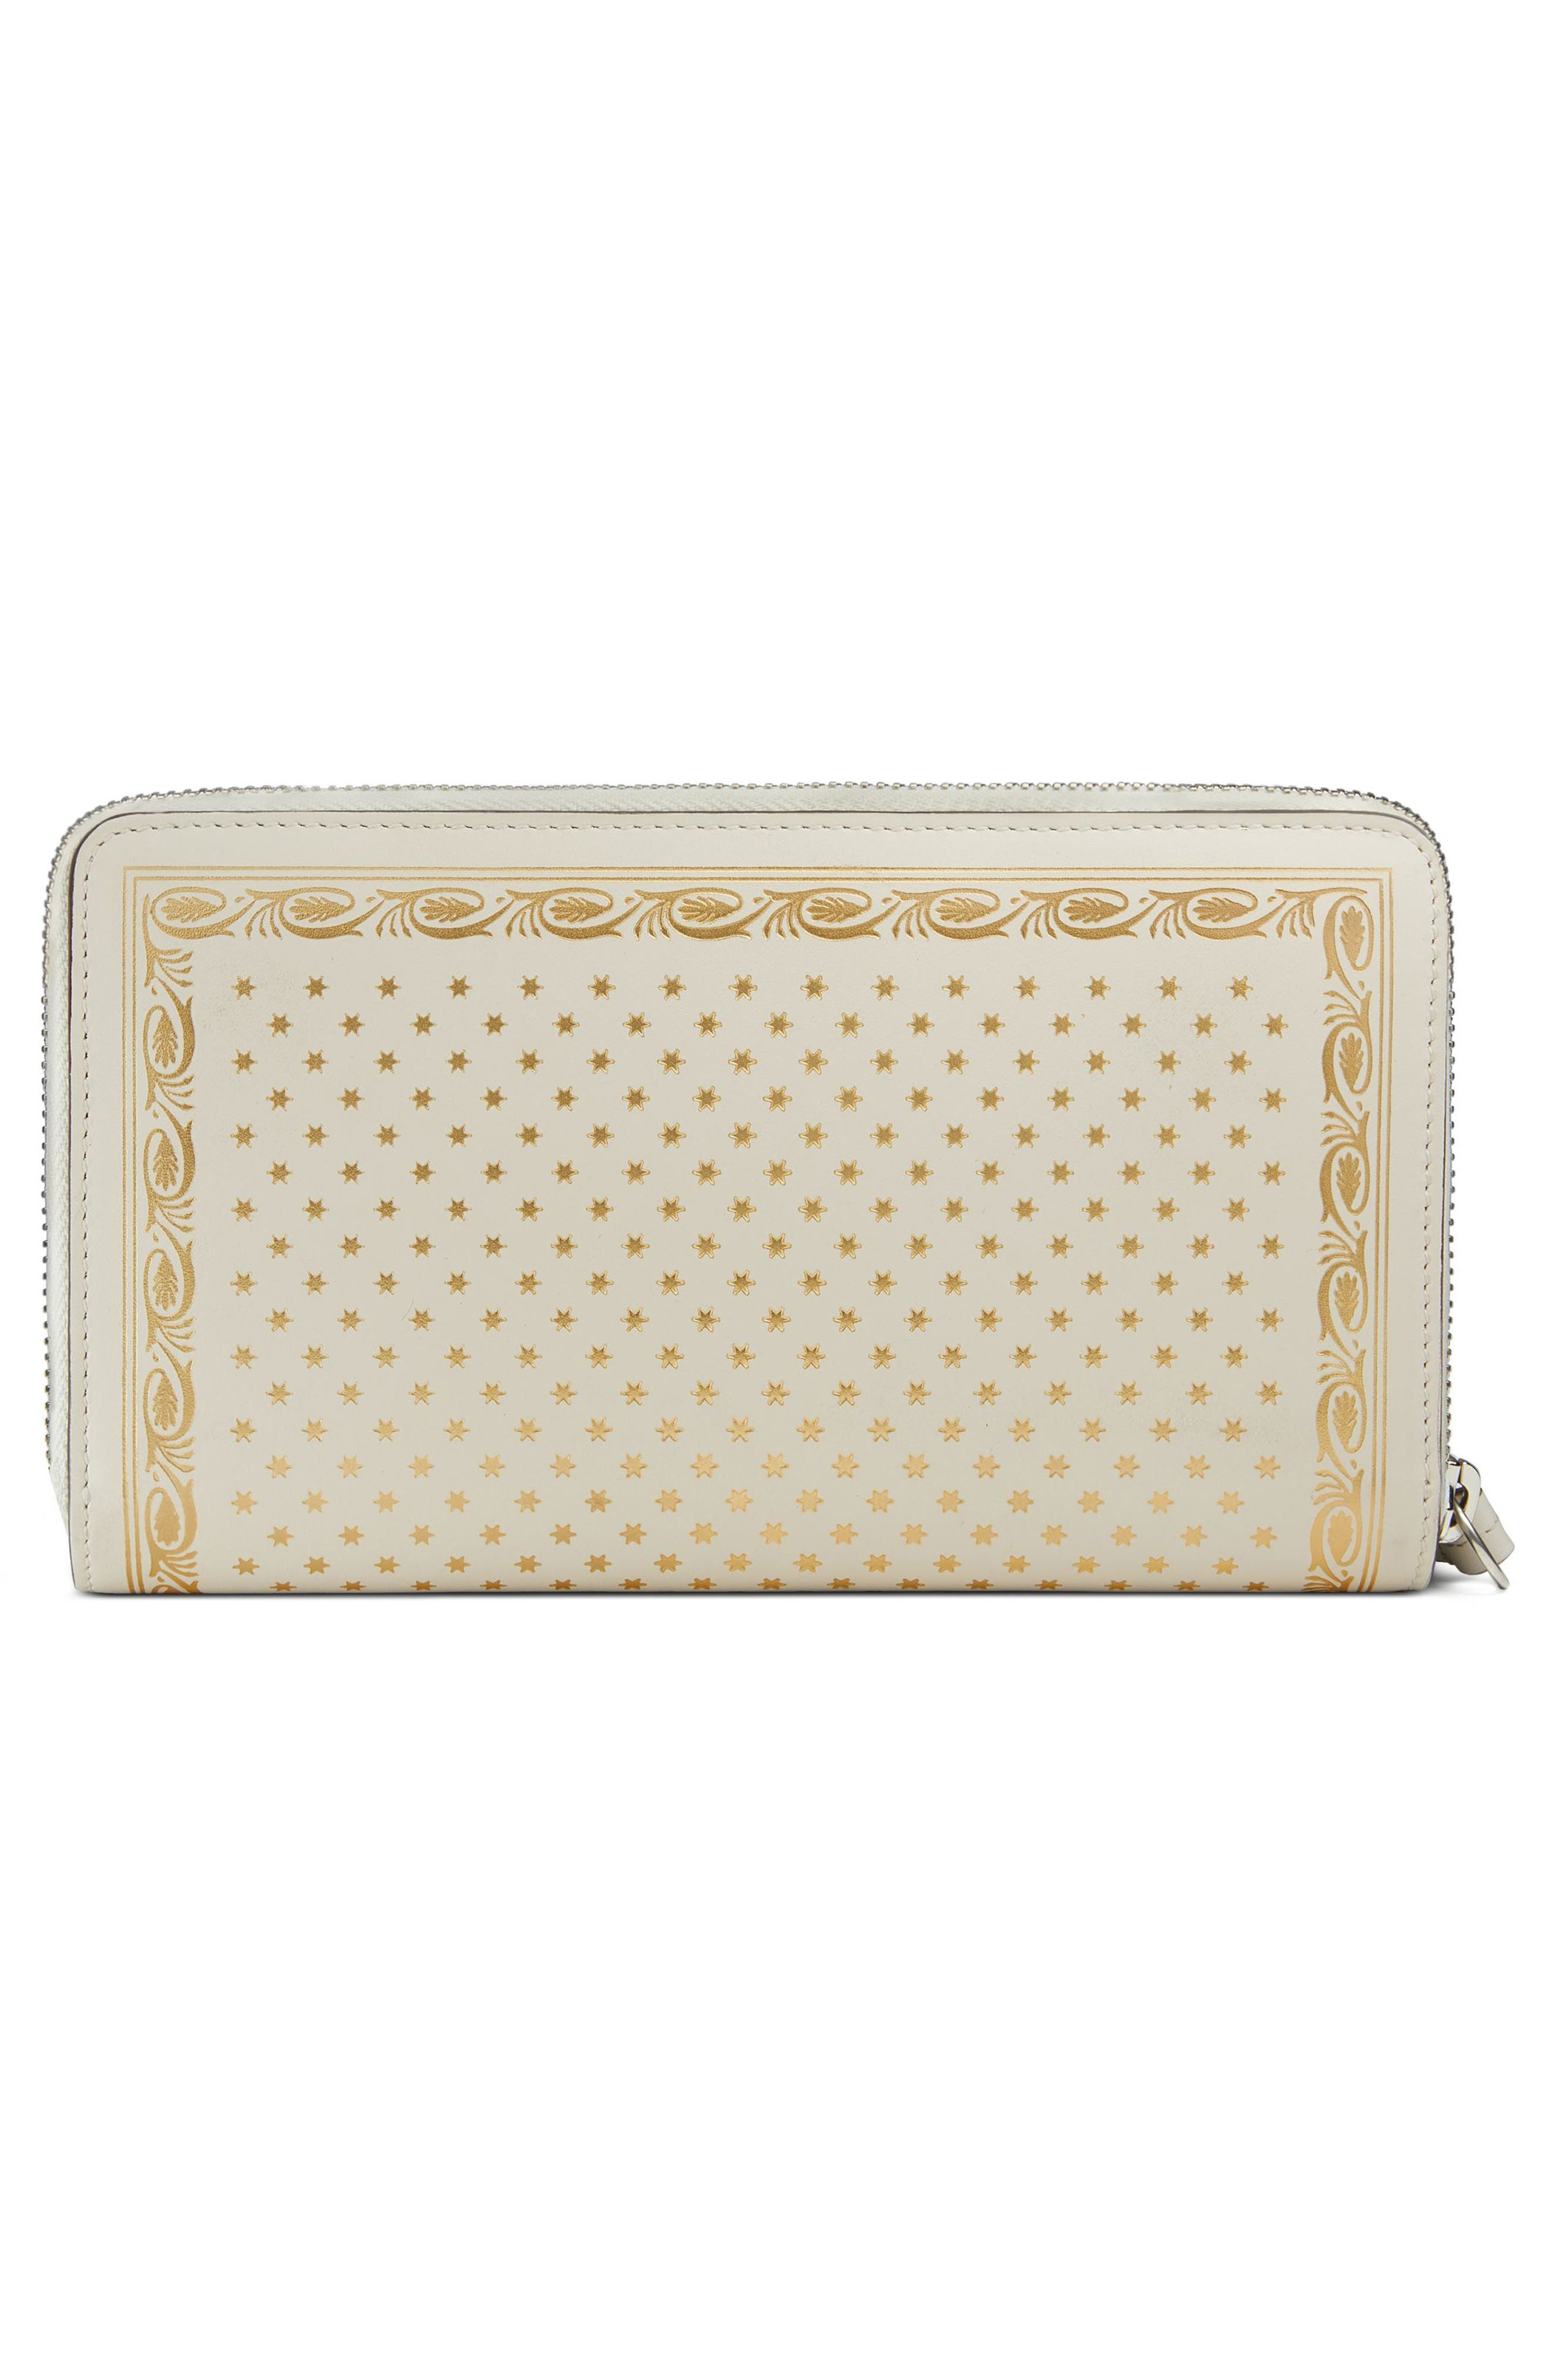 Guccy Logo Moon & Stars Leather Zip Wallet,                             Alternate thumbnail 3, color,                             MYSTIC WHITE/ ORO